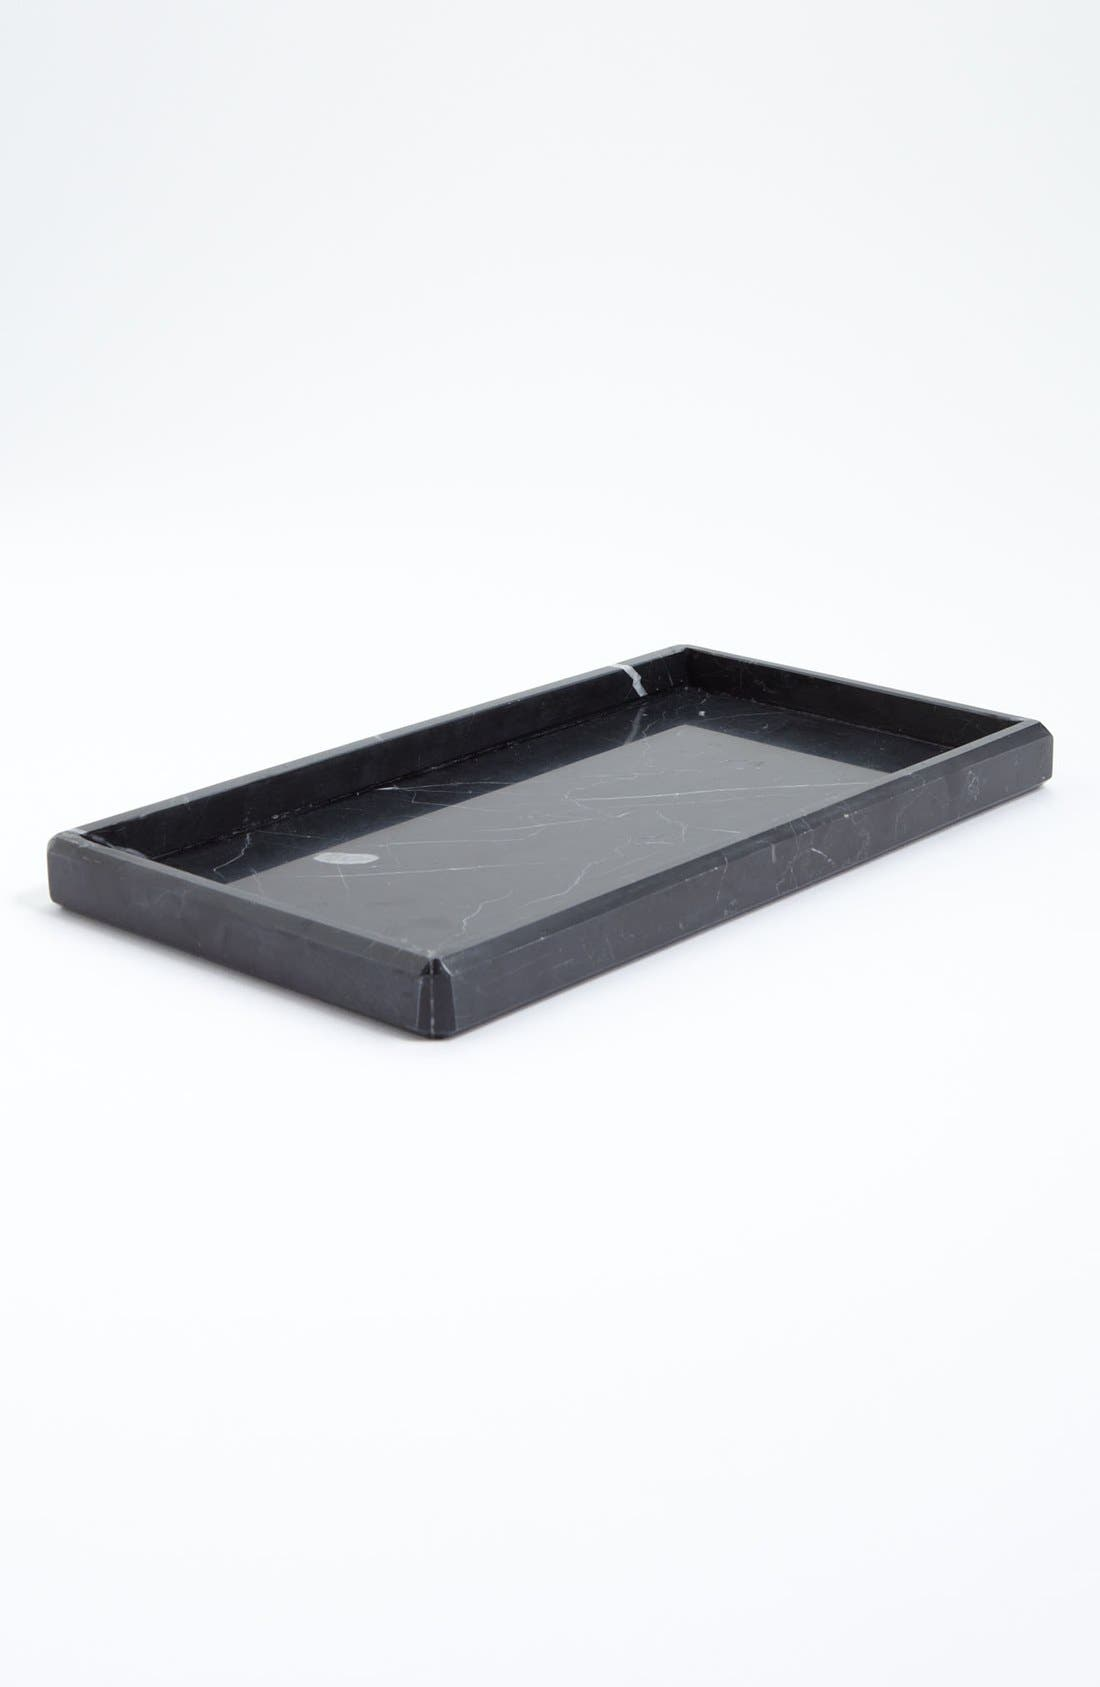 Alternate Image 1 Selected - Waterworks Studio 'Luna' Black Marble Tray (Online Only)